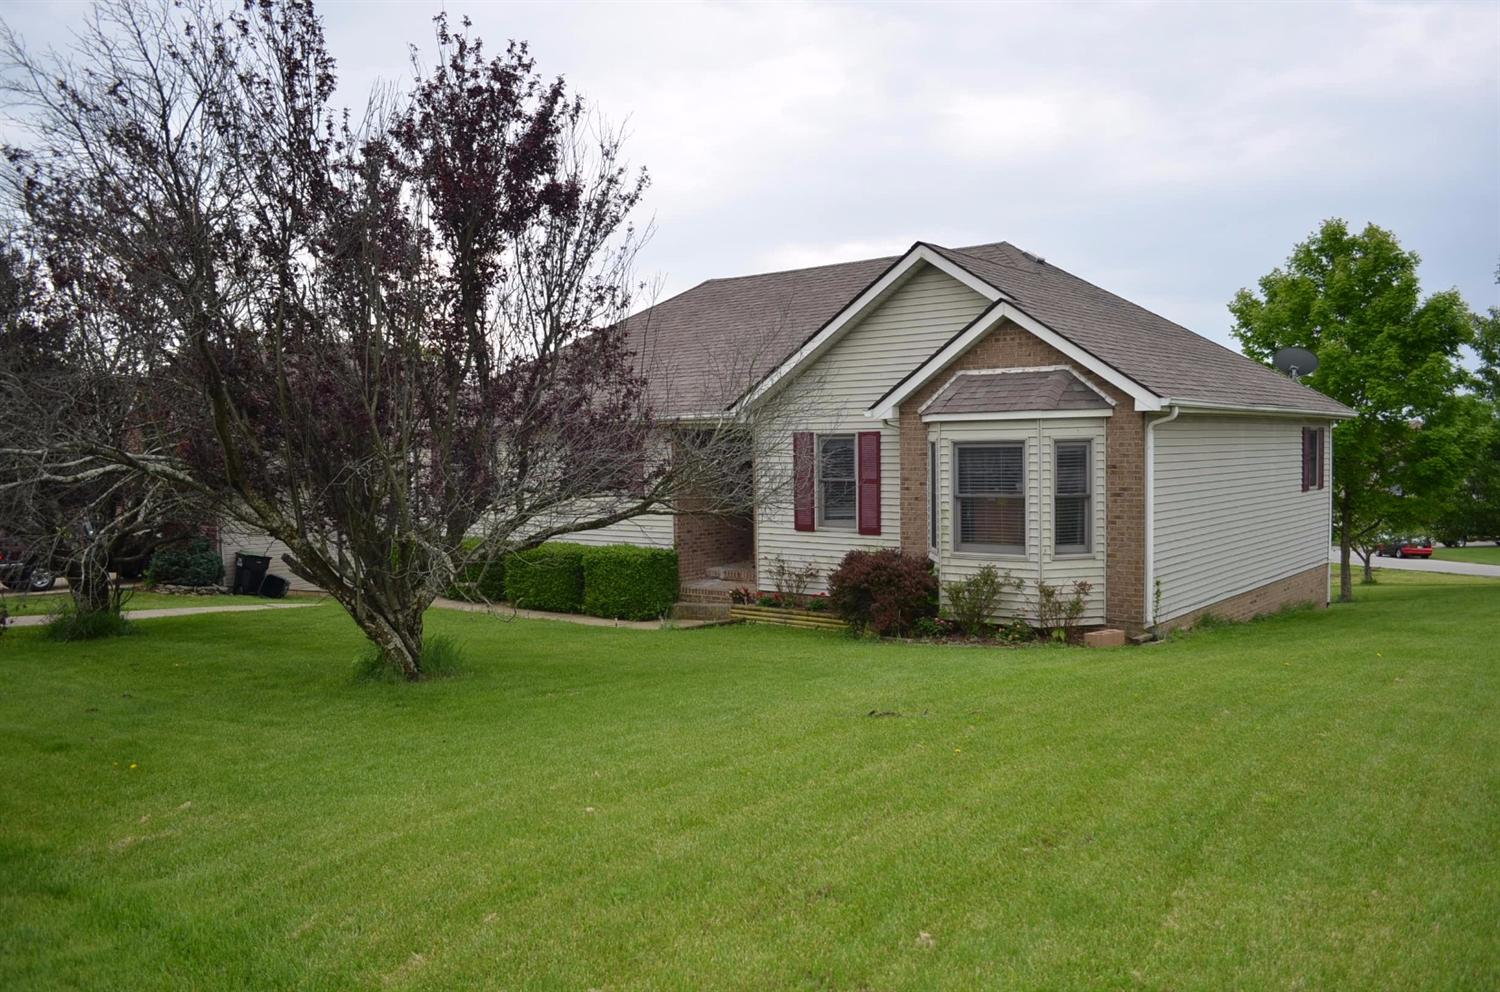 Short%20Sale,%20Offer%20being%20reviewed%20by%20bank.Comfortable%203%20bedroom%20/%202%20bath%20ranch%20with%20full%20basement%20(partially%20finished)%20on%20a%20large%20corner%20lot.%20%20Open%20living%20spaces%20with%20lots%20of%20light%20make%20for%20great%20entertaining,%20or%20large%20family%20gathering.%20The%20large%20lot%20provide%20lots%20of%20room%20for%20the%20kids,%20and%20grown%20ups,%20to%20play.%20Interior%20in%20good%20shape.%20%20Front%20steps%20have%20settled%20and%20grinder%20pump%20needs%20repair%20or%20replaced%20(estimated%20cost%20=%20$3,000-$5,000).%20%20Boating%20and%20fishing%20are%20just%20a%20short%20walk%20from%20home.%20Escape%20the%20city%20and%20enjoy%20a%20little%20vacation%20everyday.